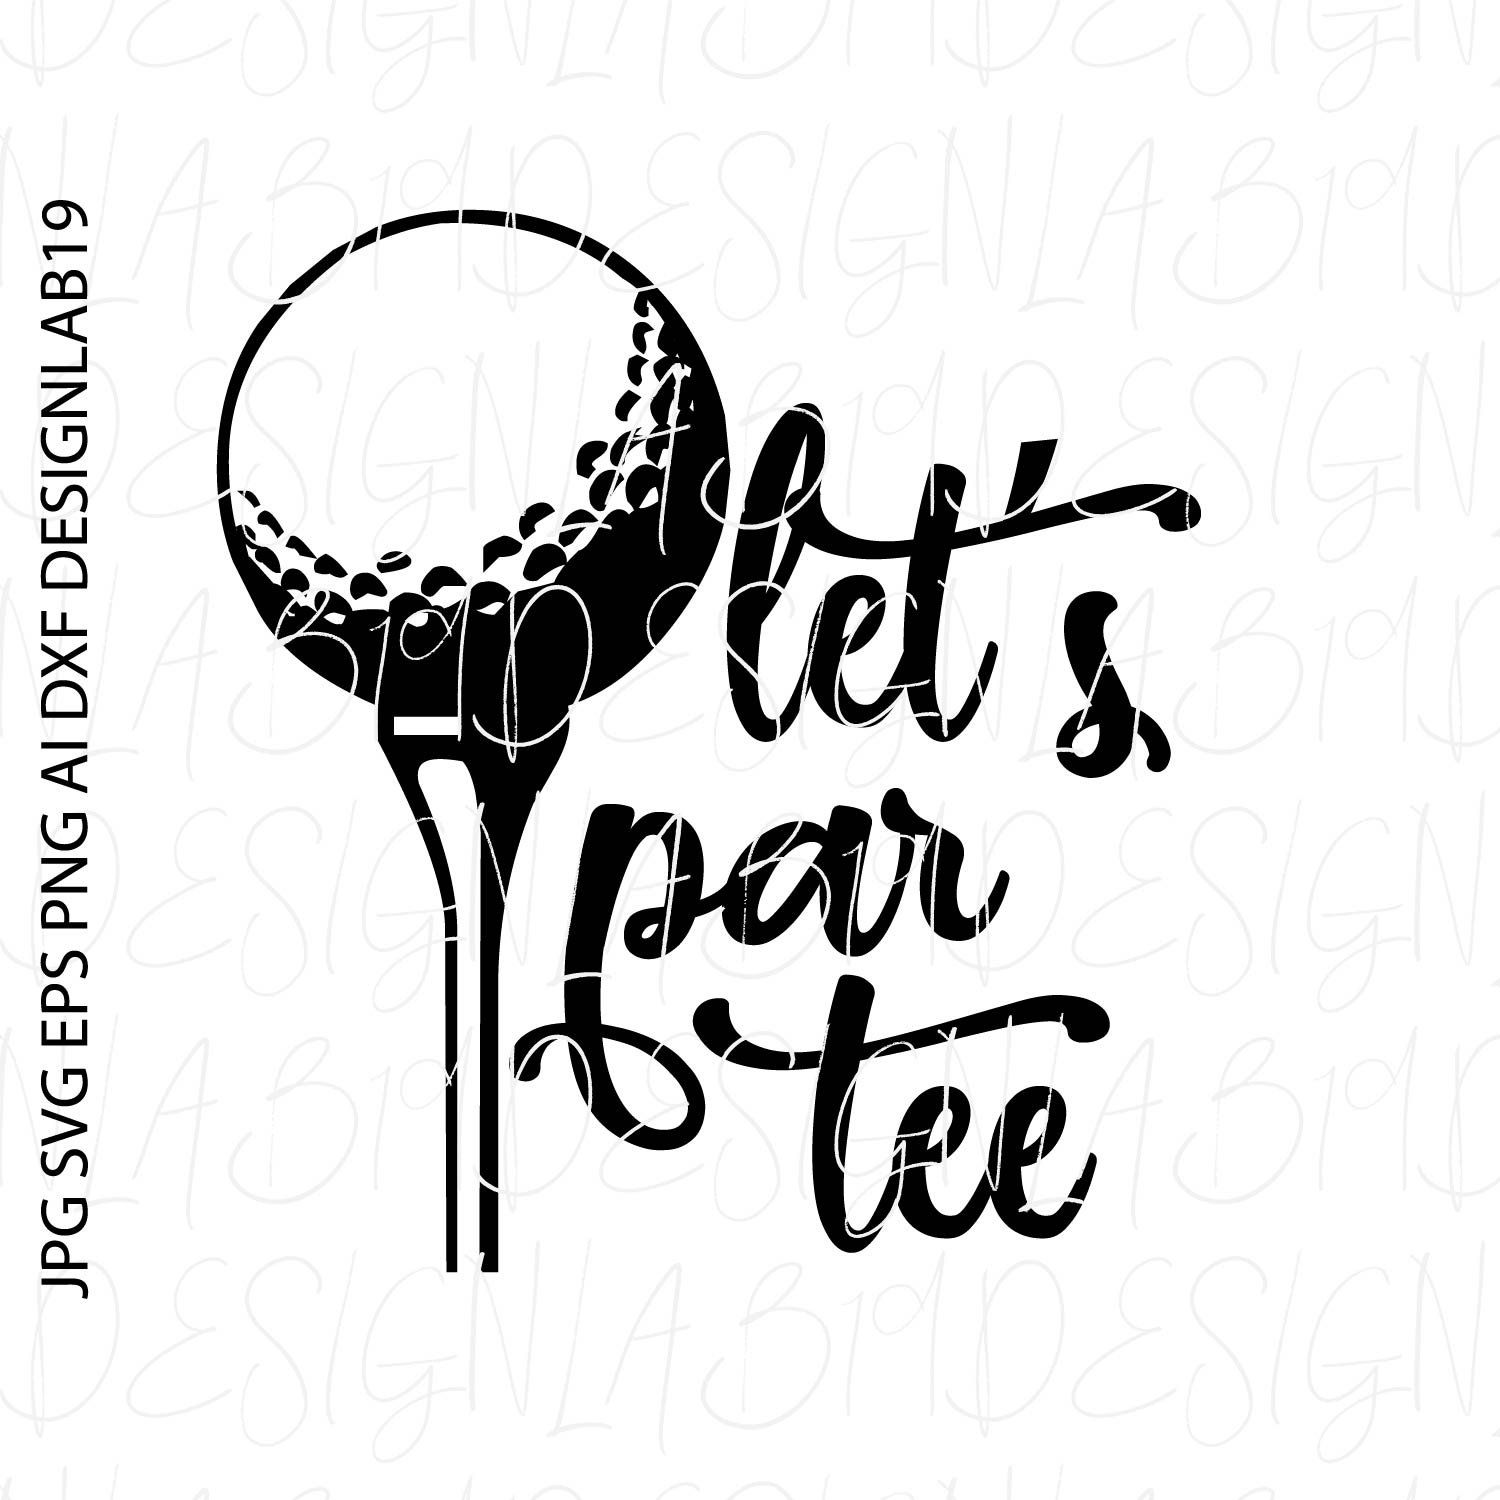 Lets Par Tee Shot Svg Top Golf Cart Swing Golfer Birdie Etsy Putt Putt Mini Golf Top Golf Golf Carts